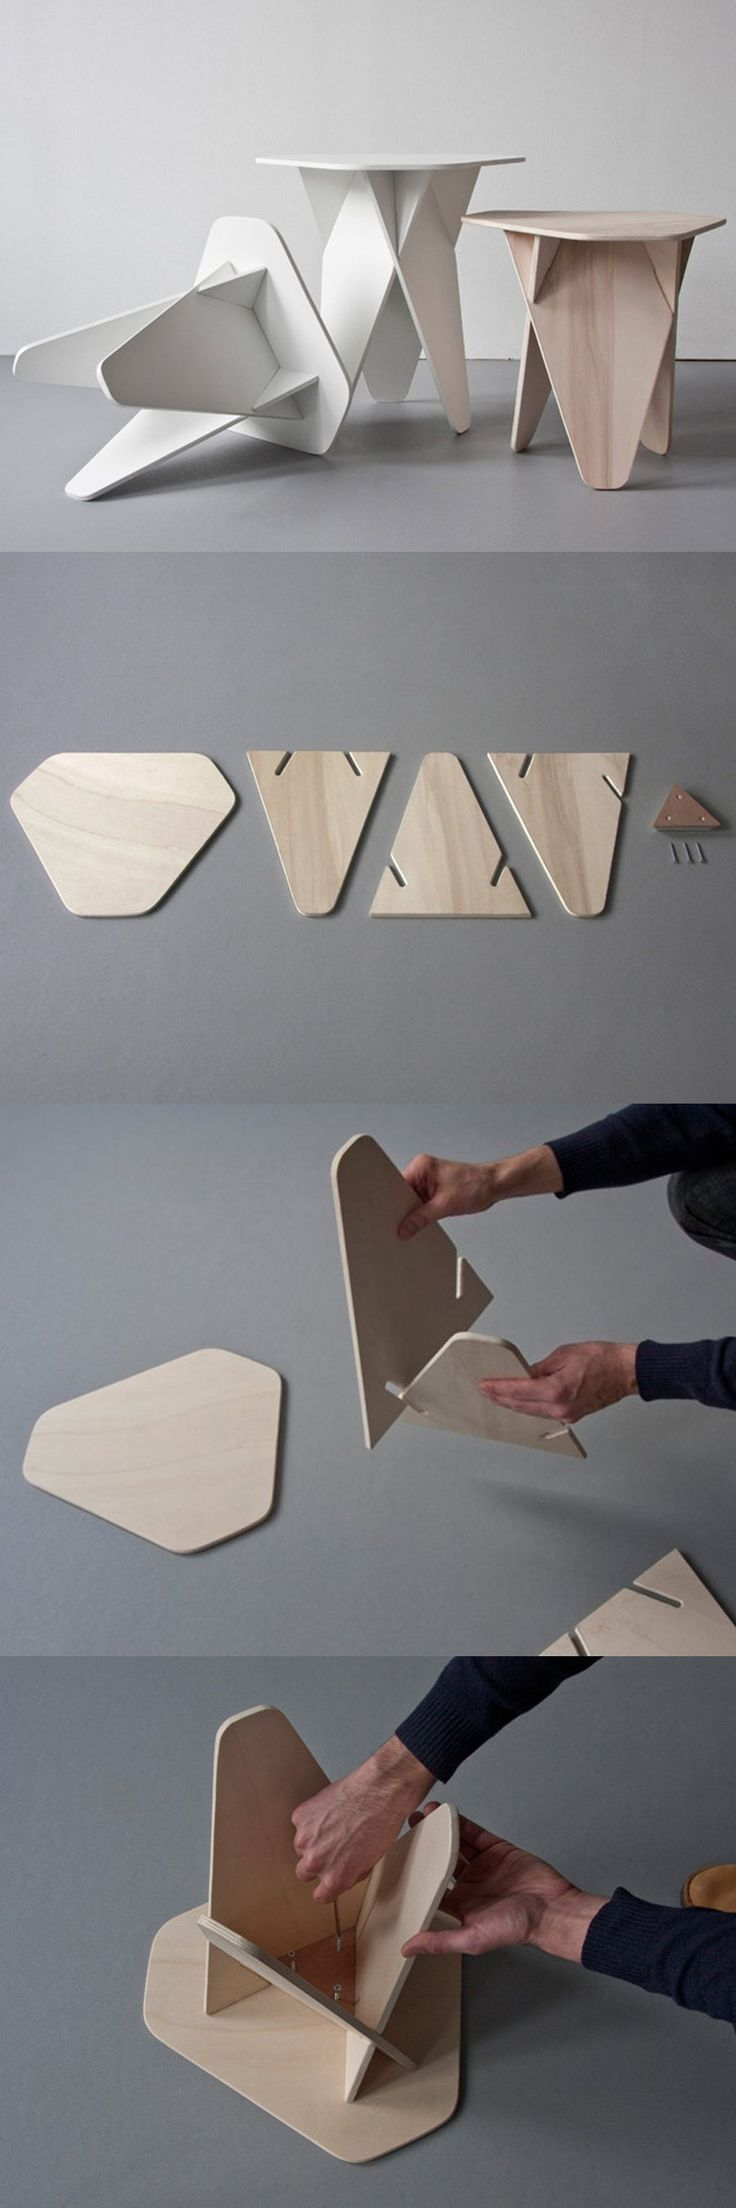 Andreas Kowalewski's Wedge Side Table is a Genius SingleMaterial Flatpack Design is part of Wood diy - The Wedge Side Table is a clever flatpack design that is simple to build, store and transport  The interlocking segments create the table's characteristic aesthetics